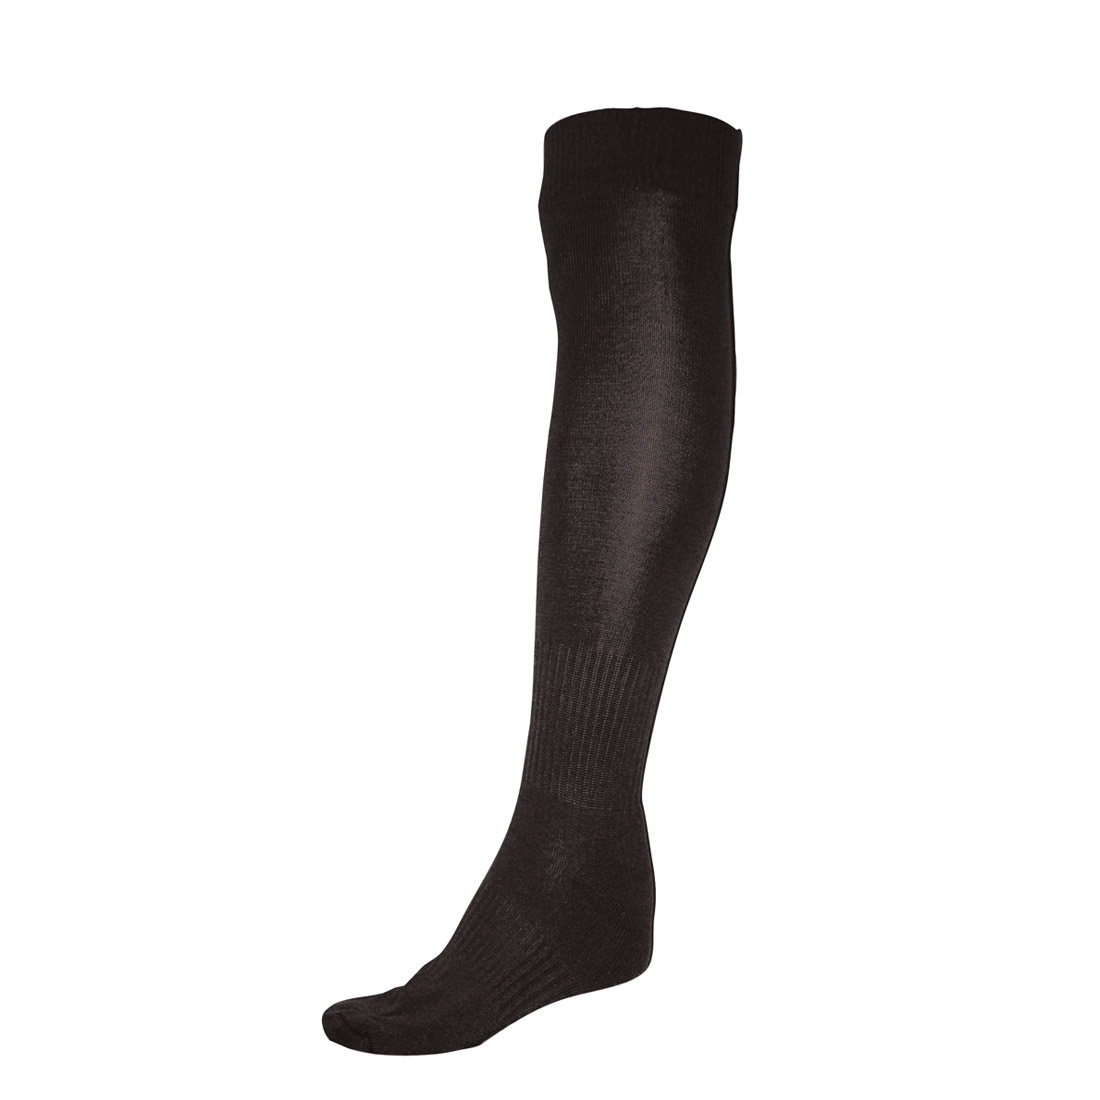 d6f473ae5c37 Wear the Pear Sock - Polyester Tube Socks - longstreth.com